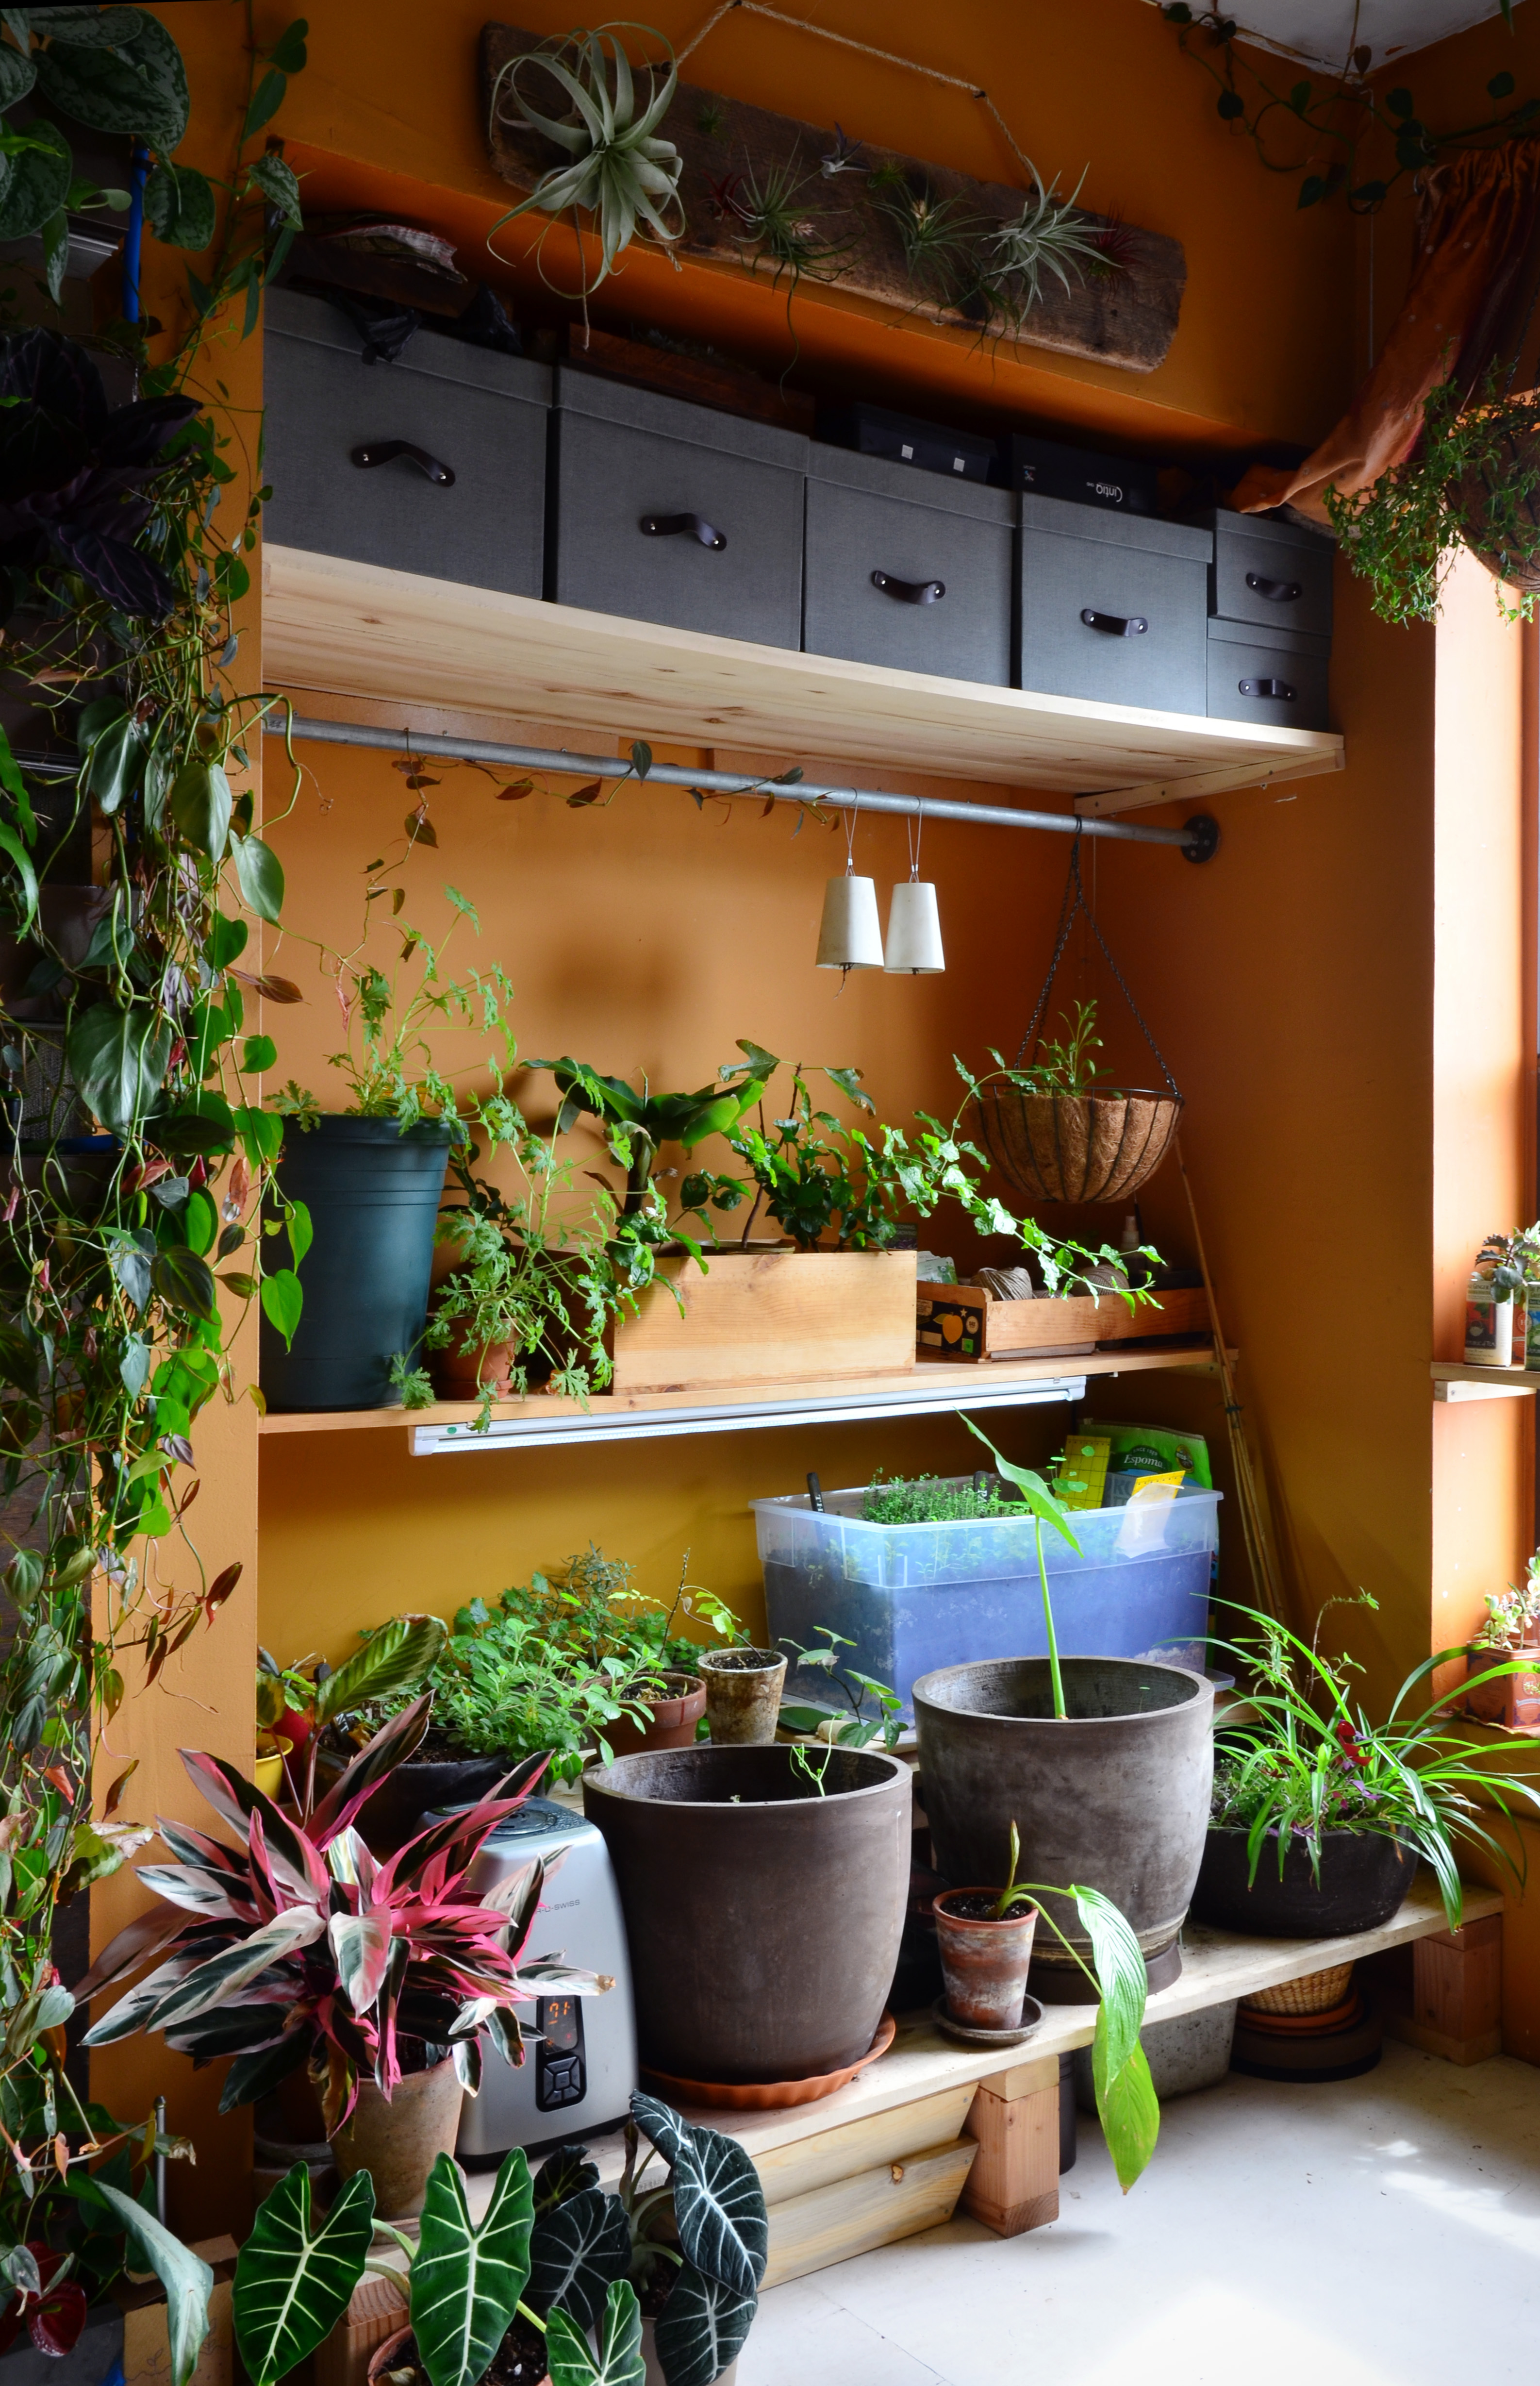 Twin Platform Bed Ikea, 15 Indoor Garden Ideas How To Make A Garden Inside Your Home Apartment Therapy